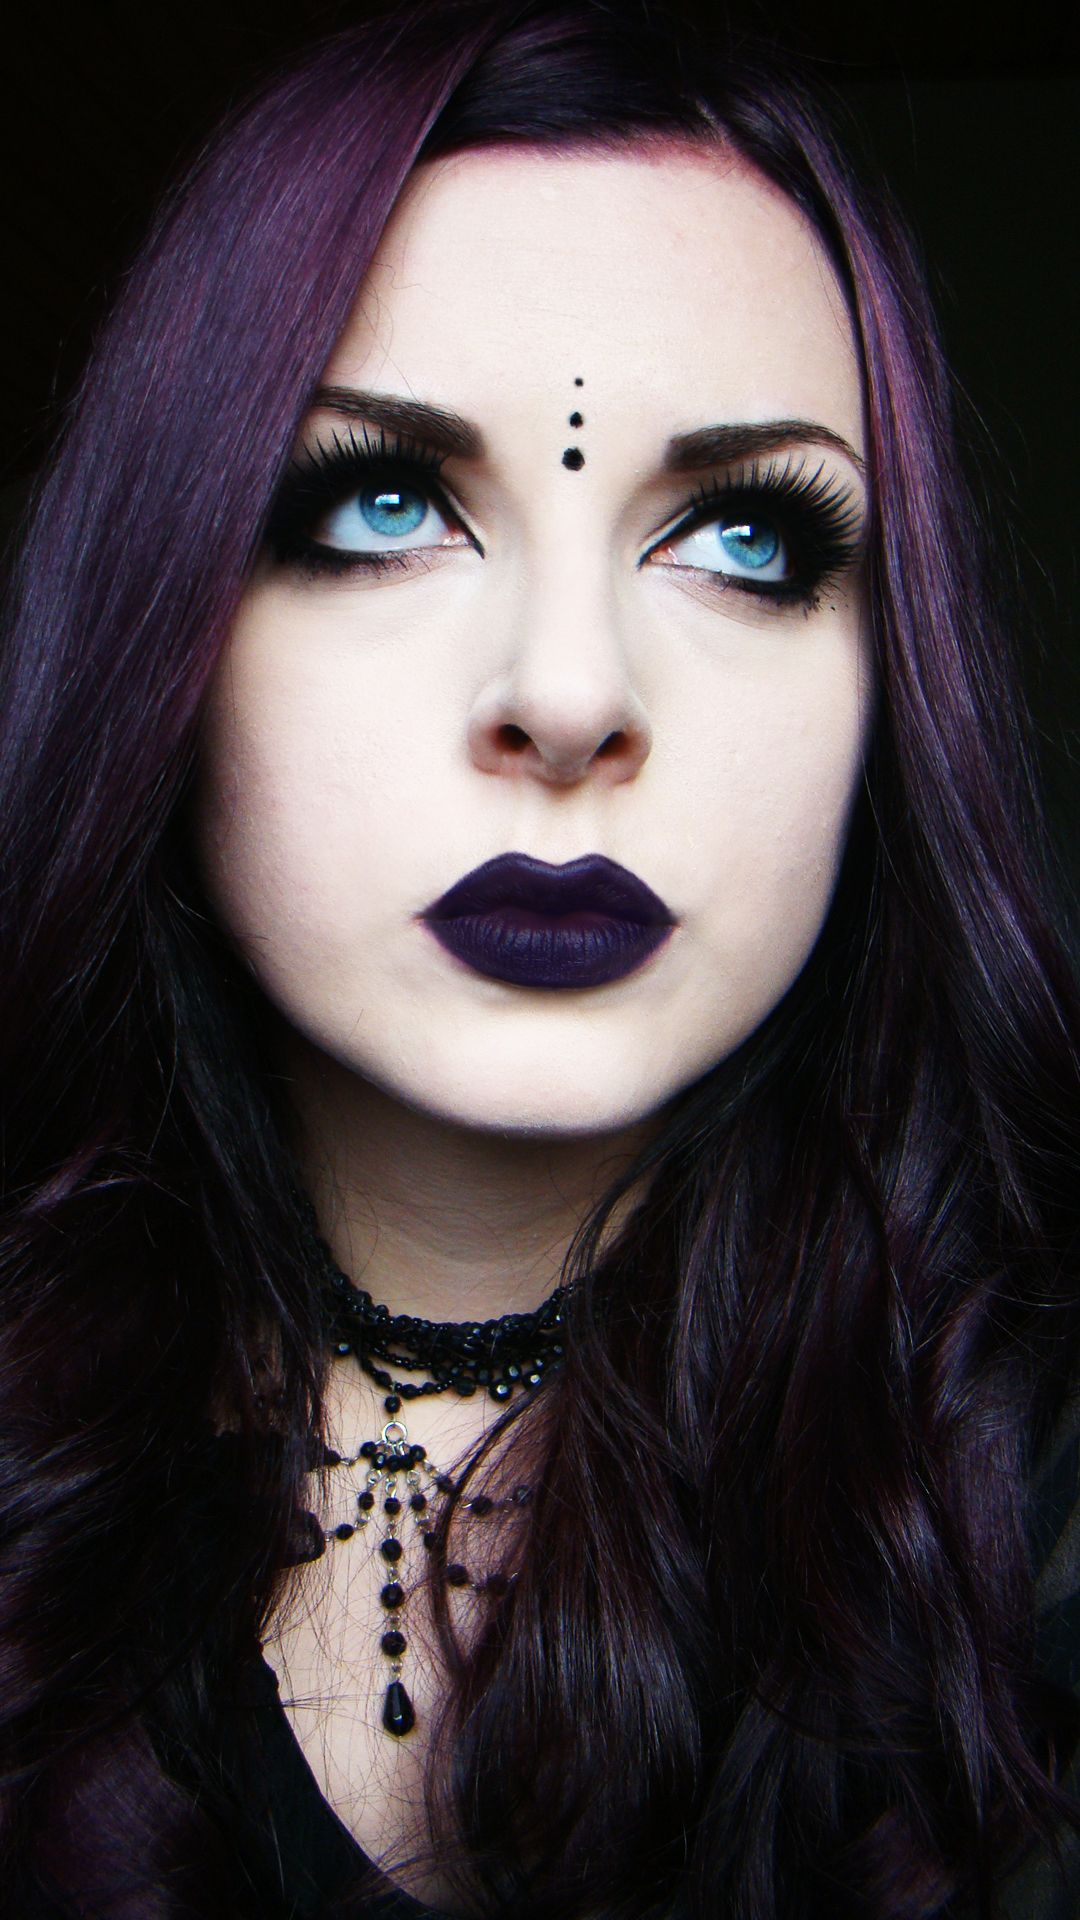 Goth Makeup Tumblr | www.pixshark.com - Images Galleries ... Gothic Vampire